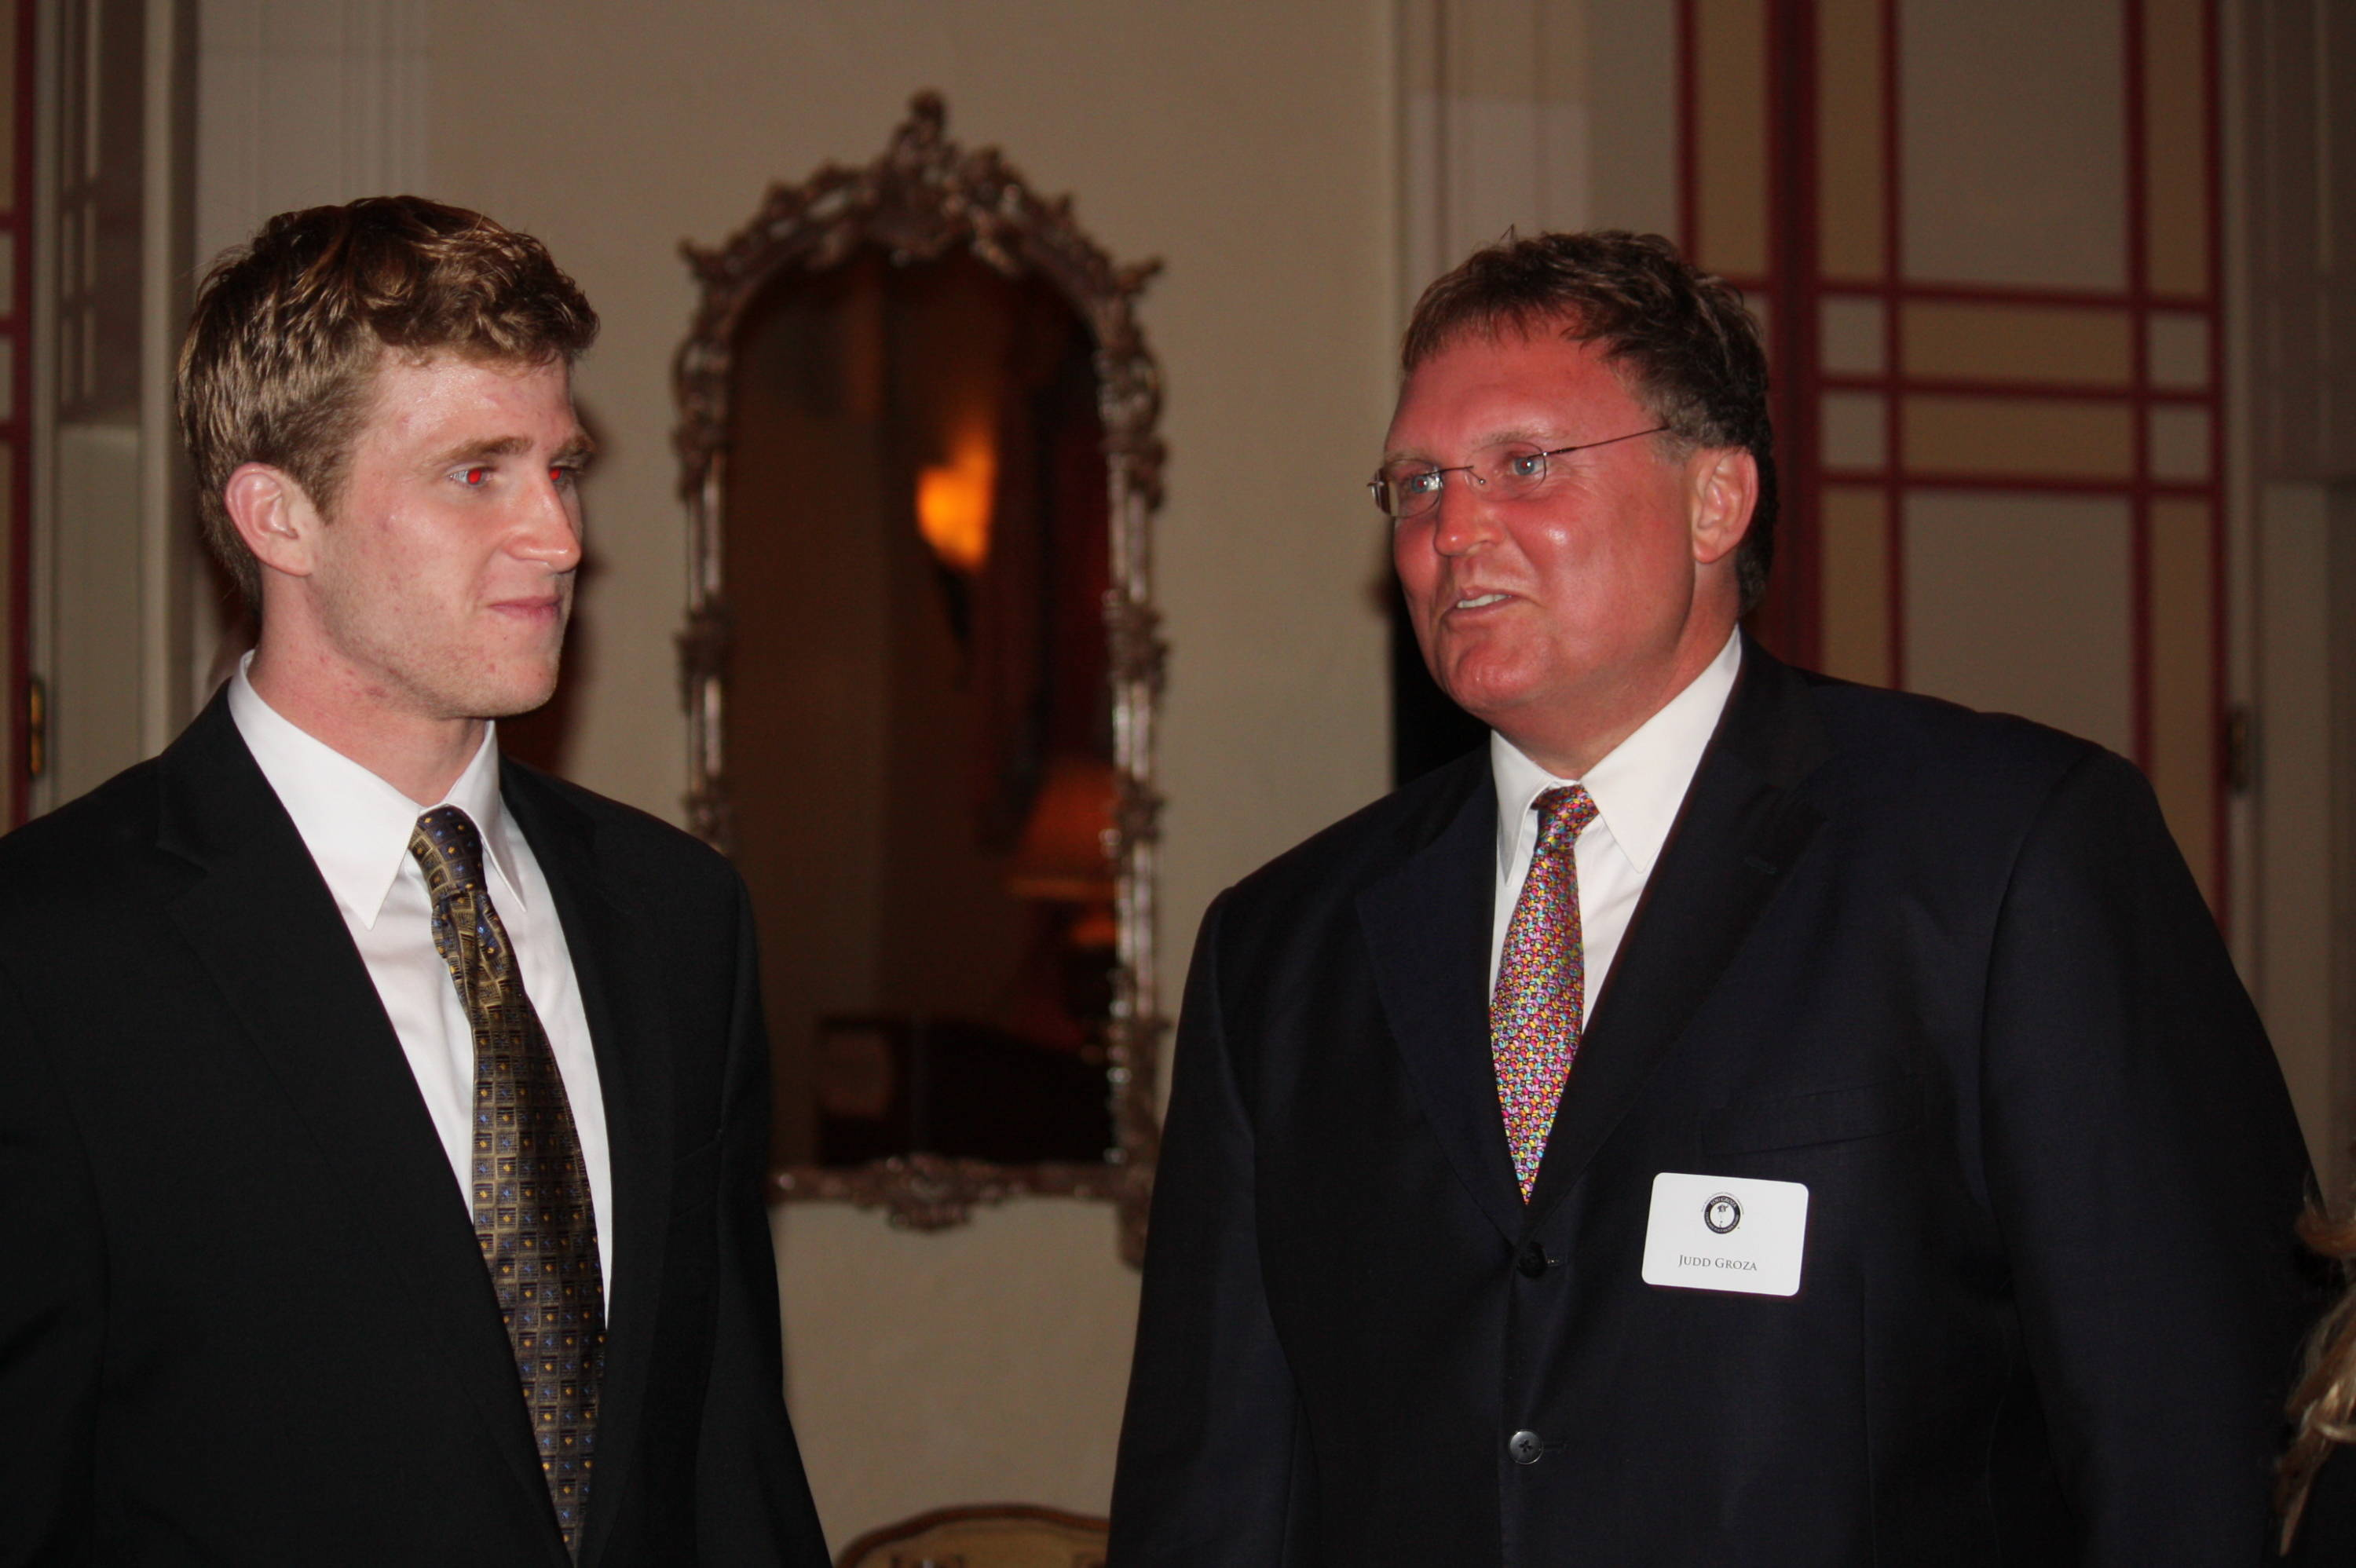 Dustin had a chance to spend time with Judd Groza, the son of the late Hall of Fame kicker whose name graces the award to the nation's top kicker.